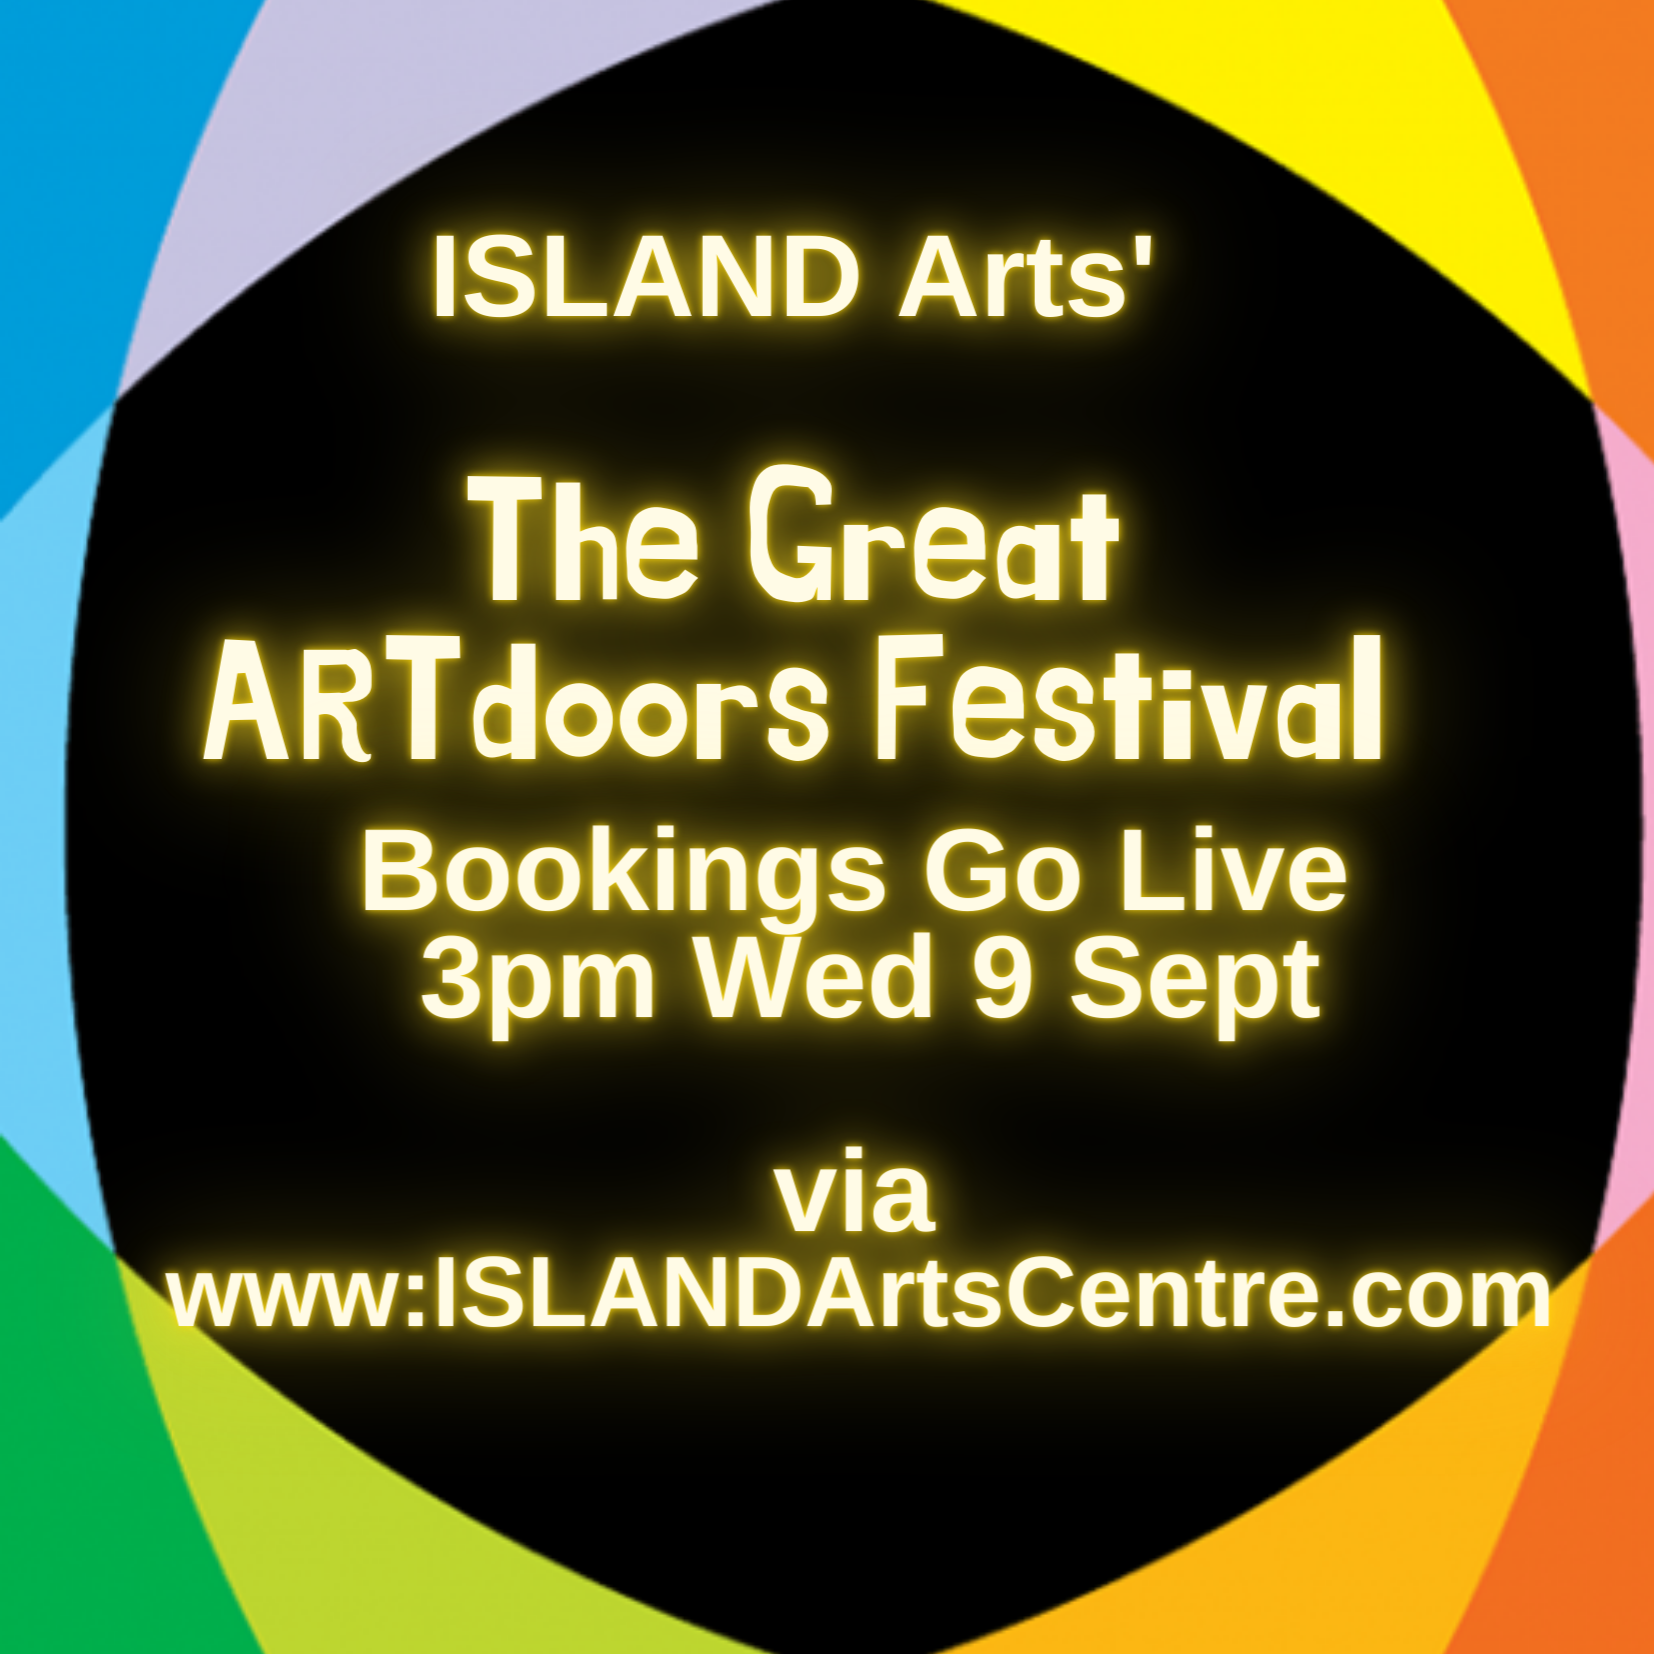 ISLAND Arts' Great ARTdoors Festival Goes Live Today at 3pm via www.ISLANDArtsCentre.com